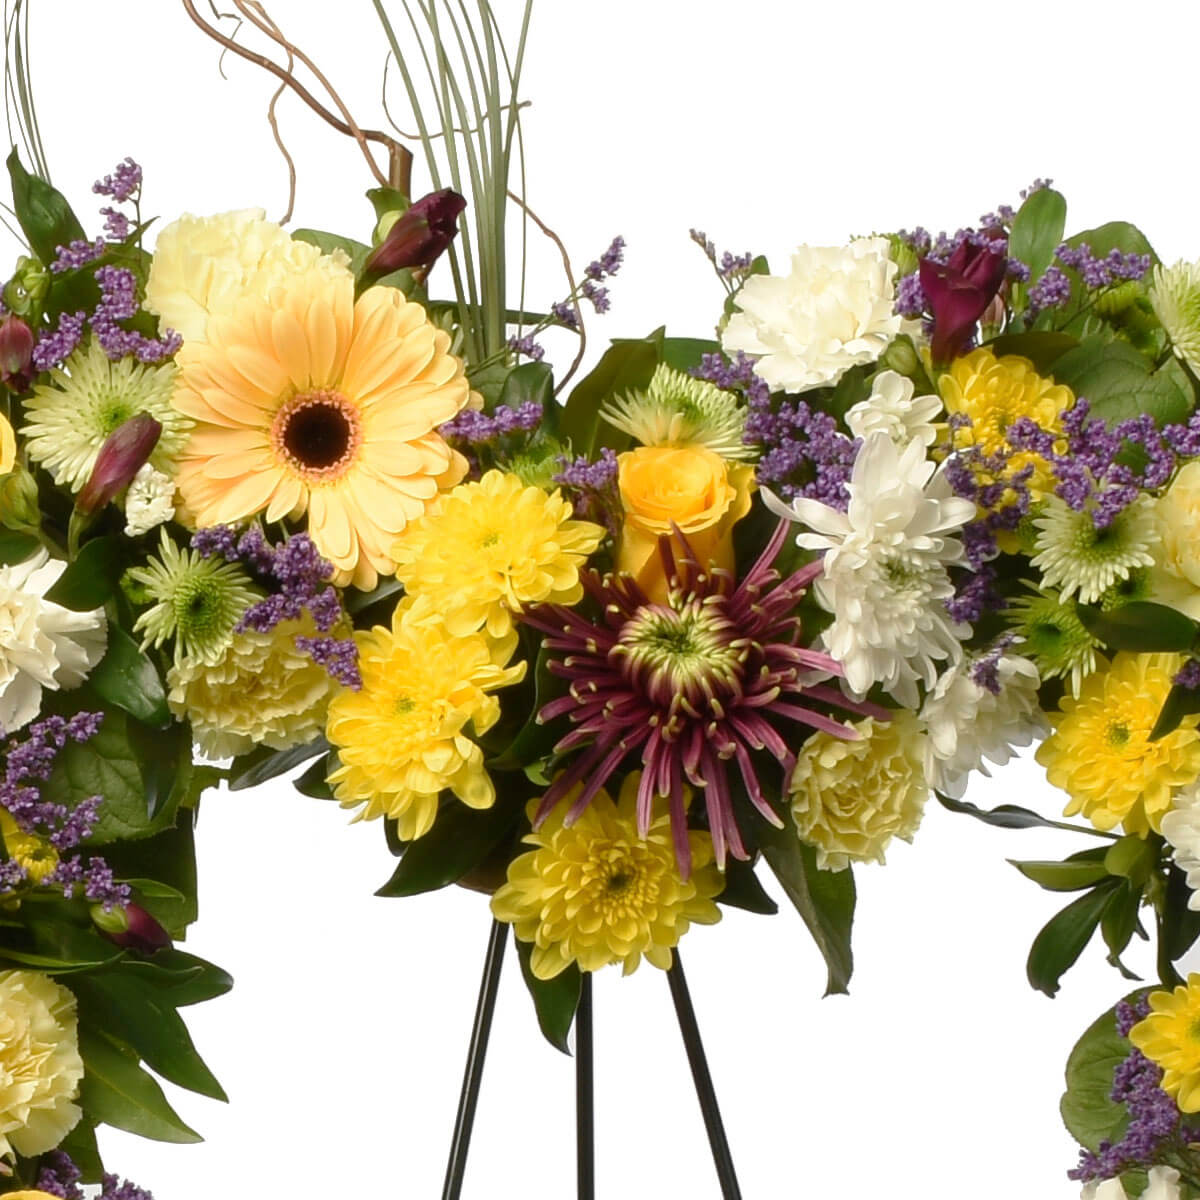 Sympahty wreath 24 inches for delivery in Burnaby and Metro Vancouver from Adele Rae Florist